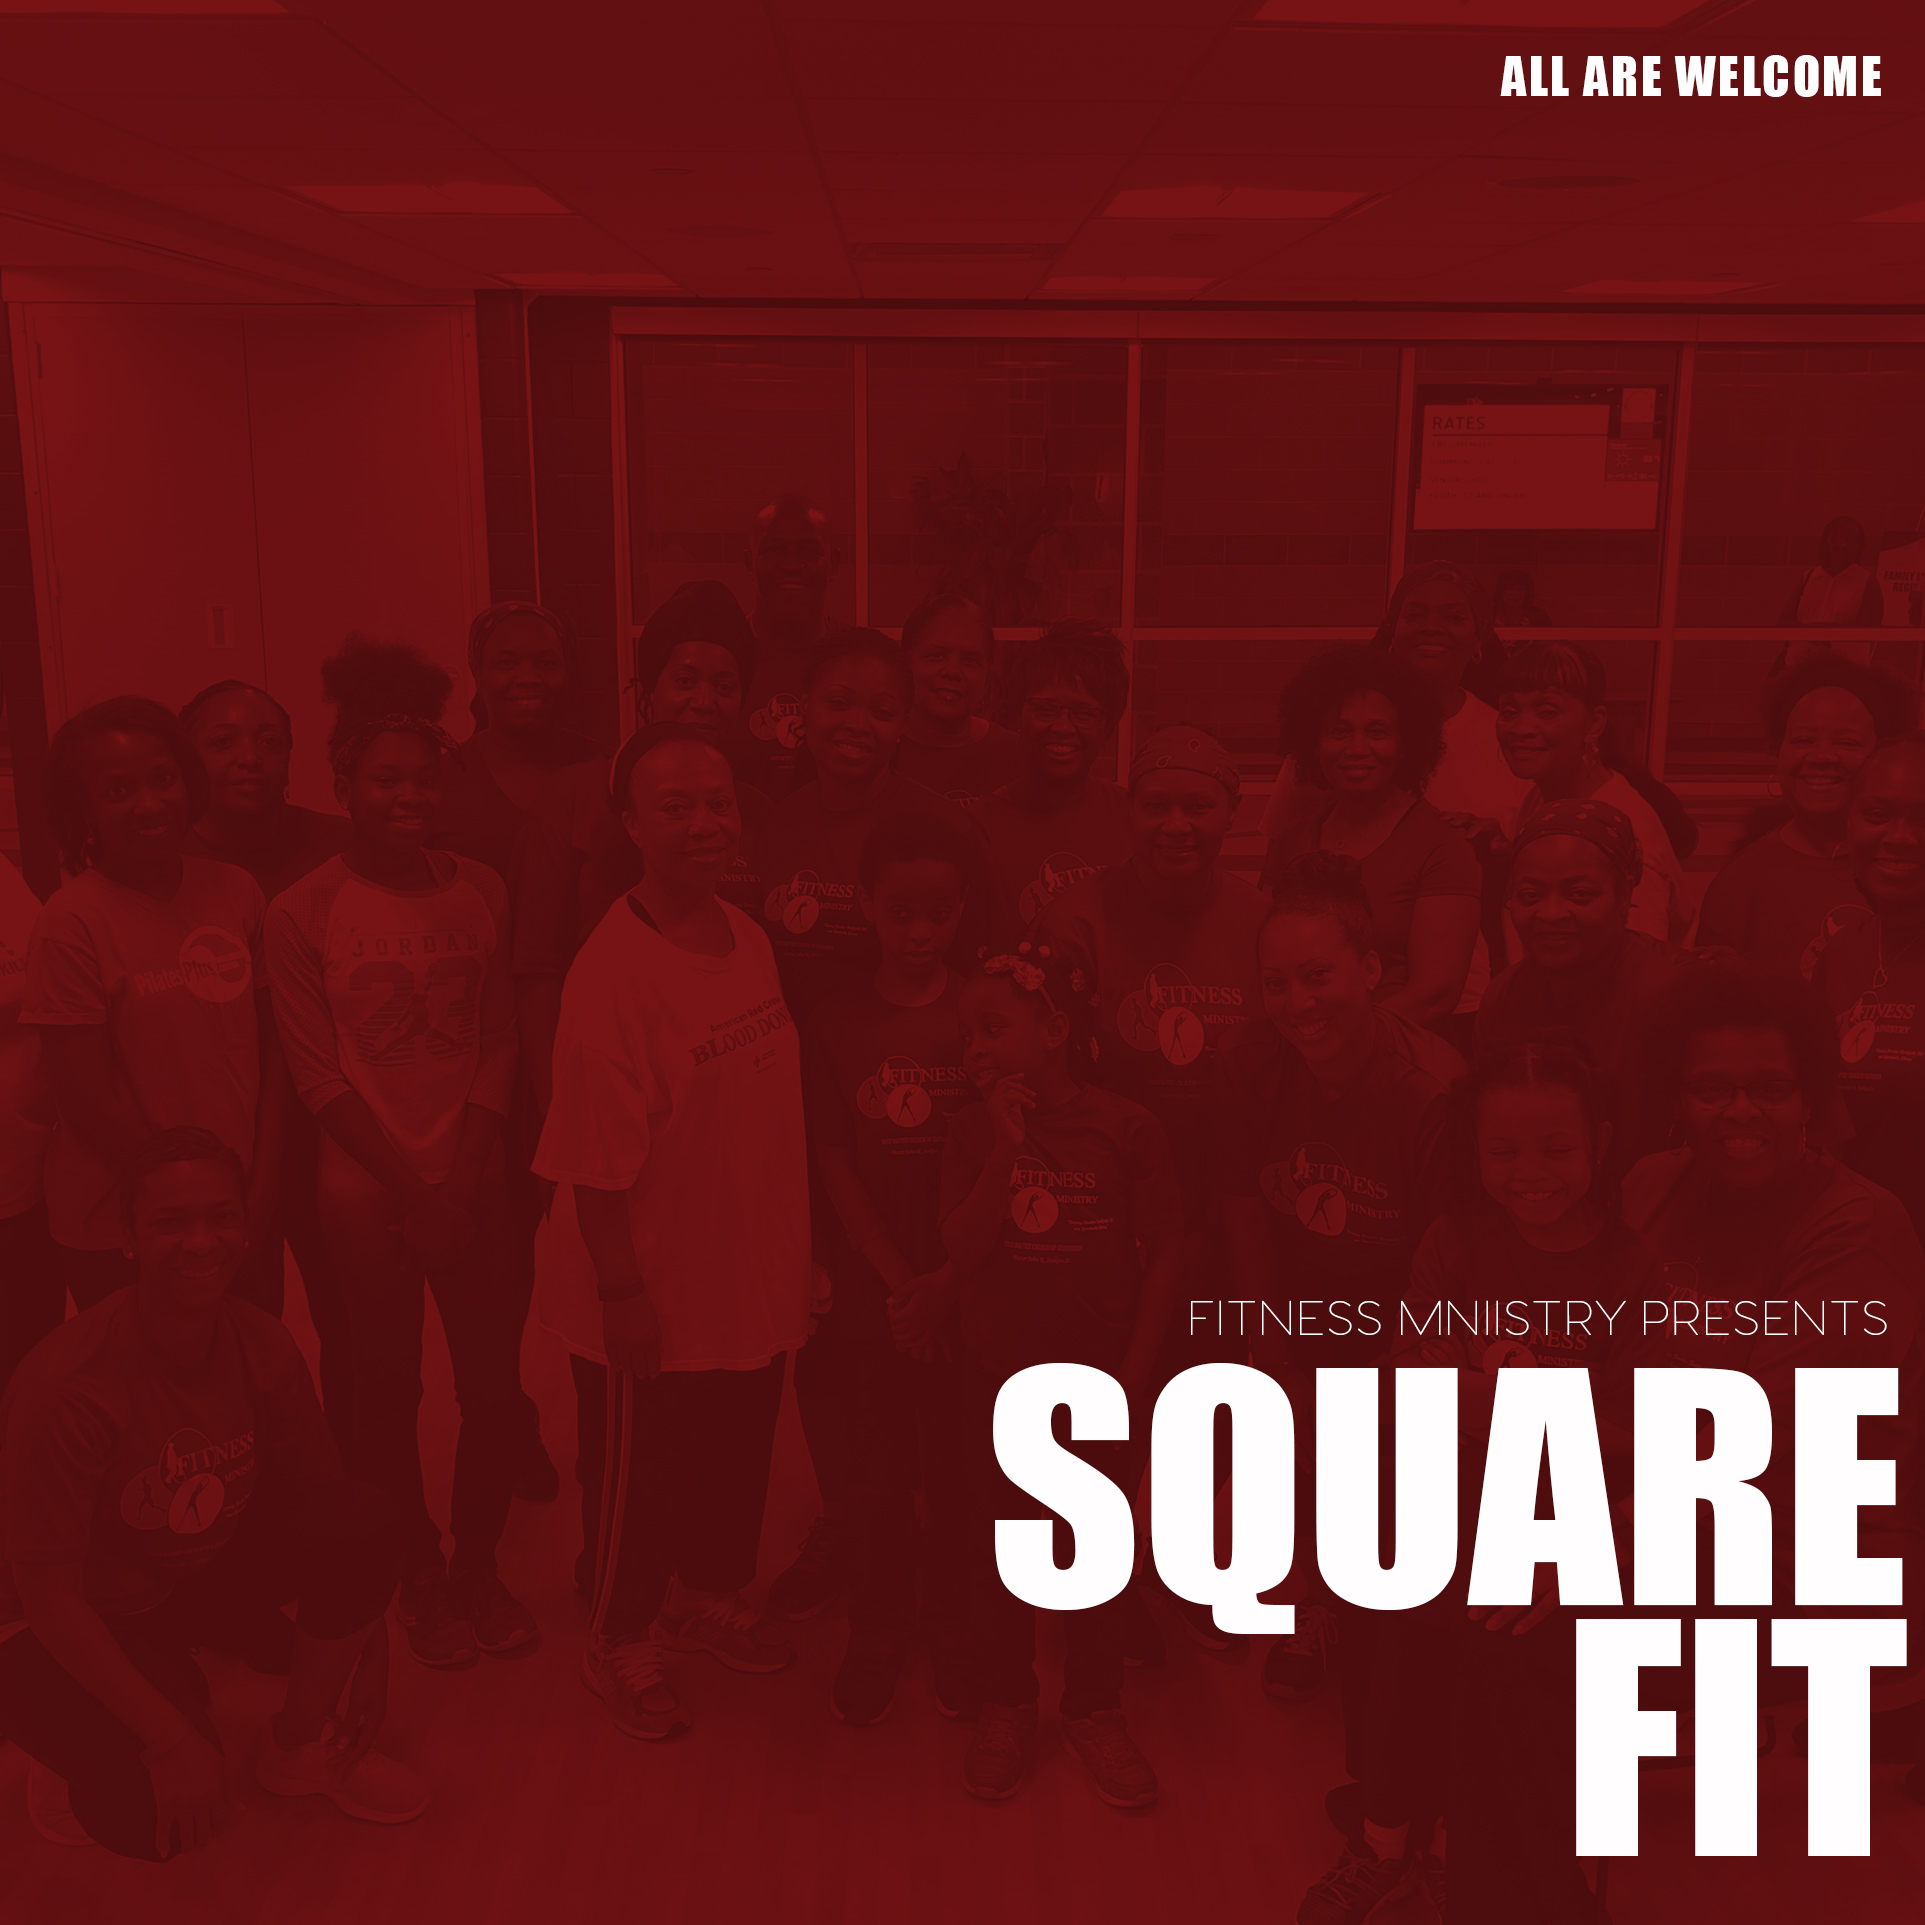 Square Fit is an agility and cardio interval based workout designed to make you faster and stronger through movements in boxing using a square. The class involves plyometric training, body weight work, and running. Suitable for all fitness levels.